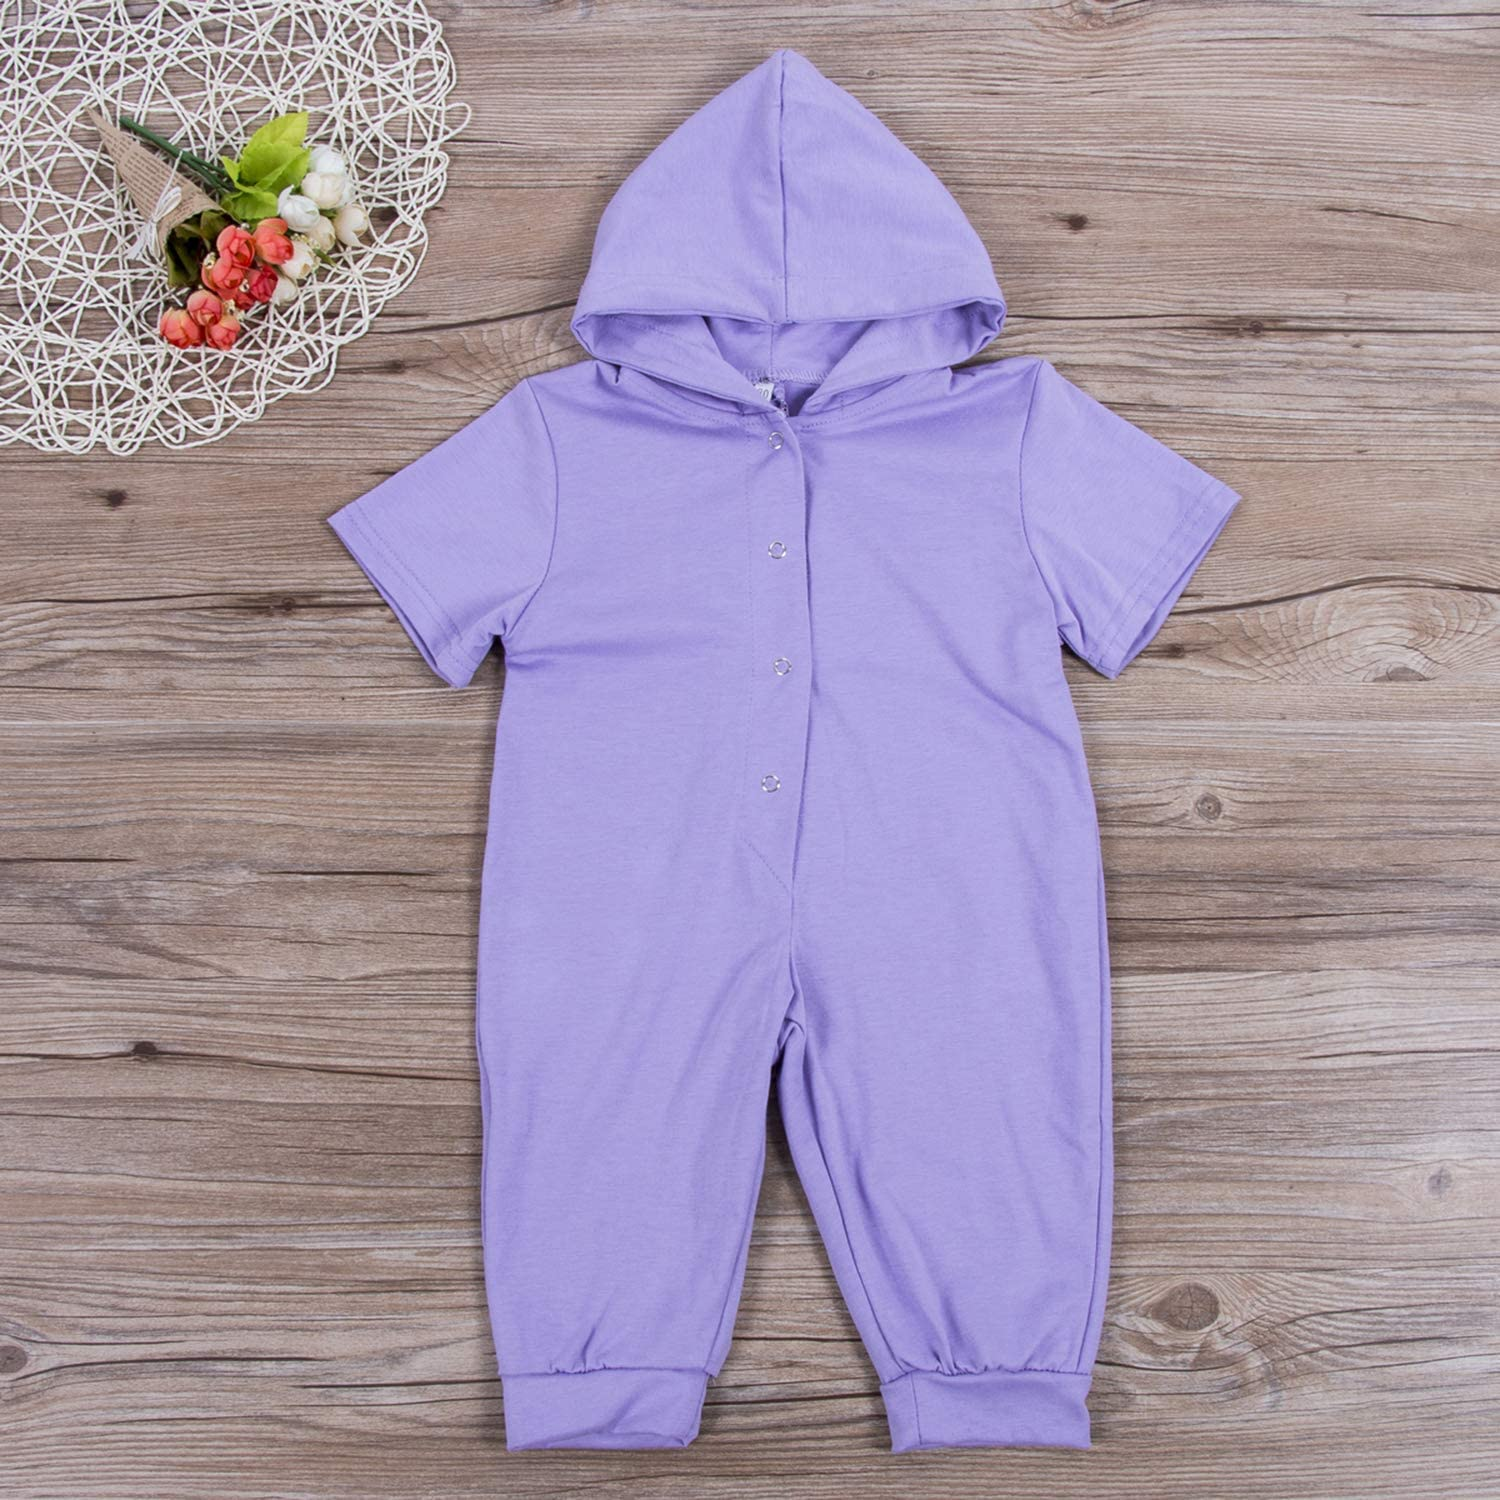 docotor akio Infant Baby Boys Girls Dinosaur Hooded Romper Bodysuit One Piece Outfits